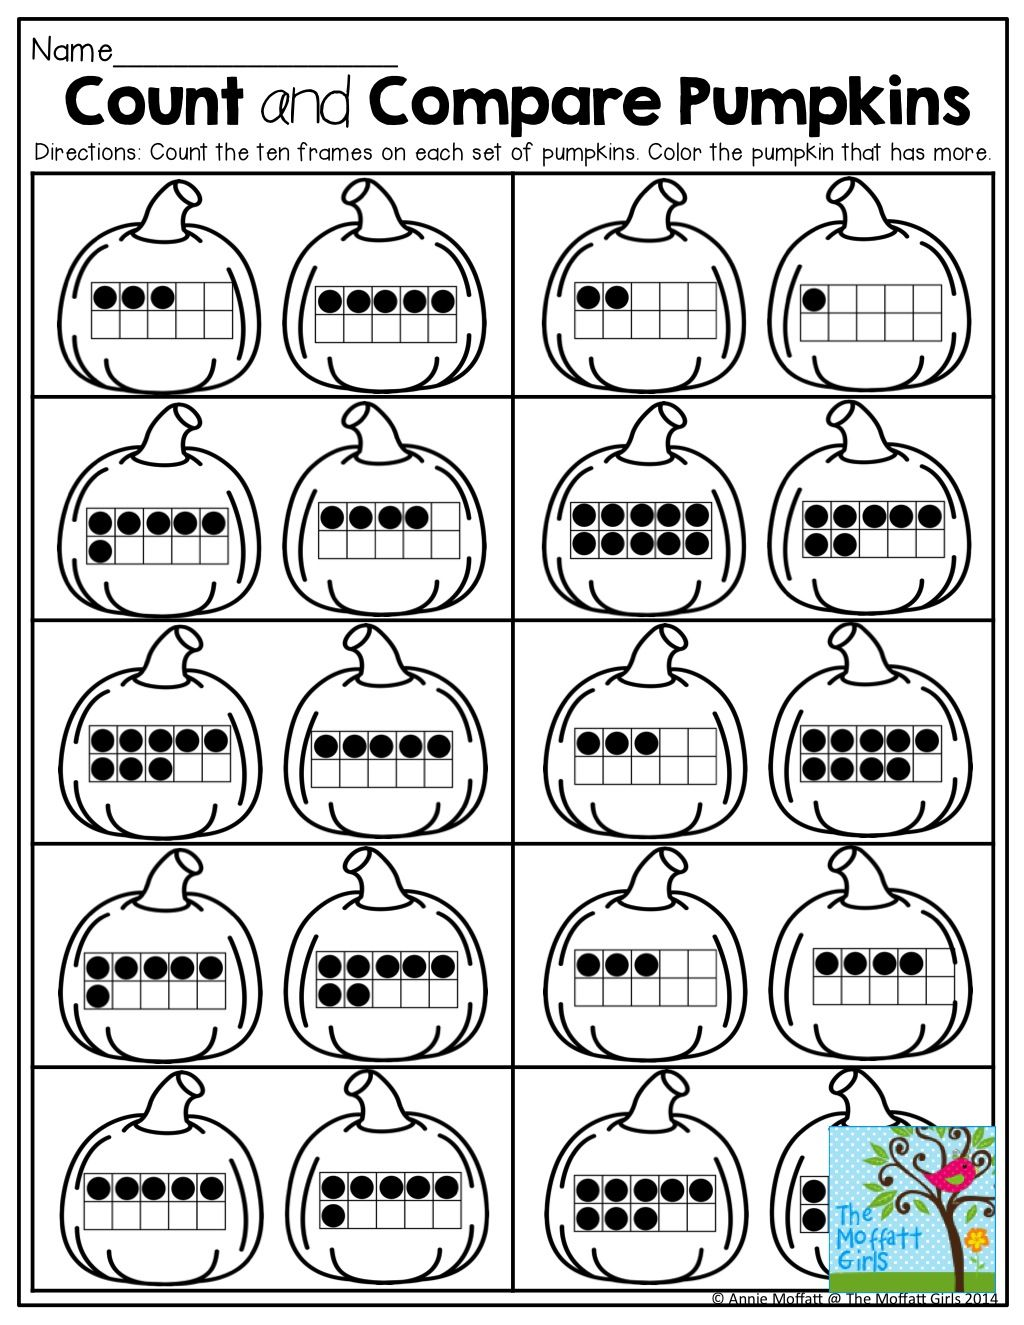 Count And Compare Pumpkins With Ten Frames